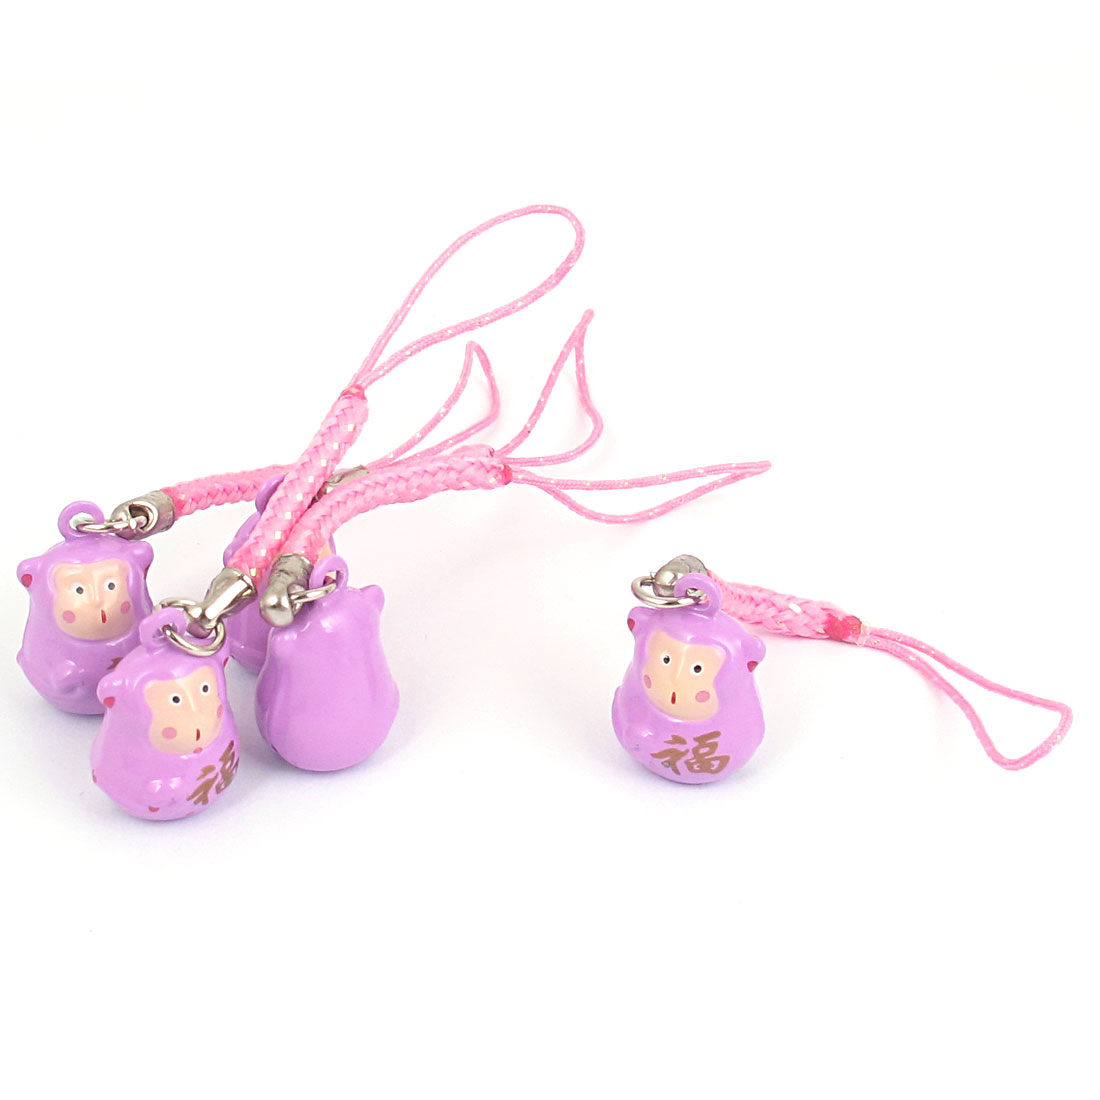 Metal Monkey Cartoon Ring Bell Light Purple 18mm Diameter 5 Pcs